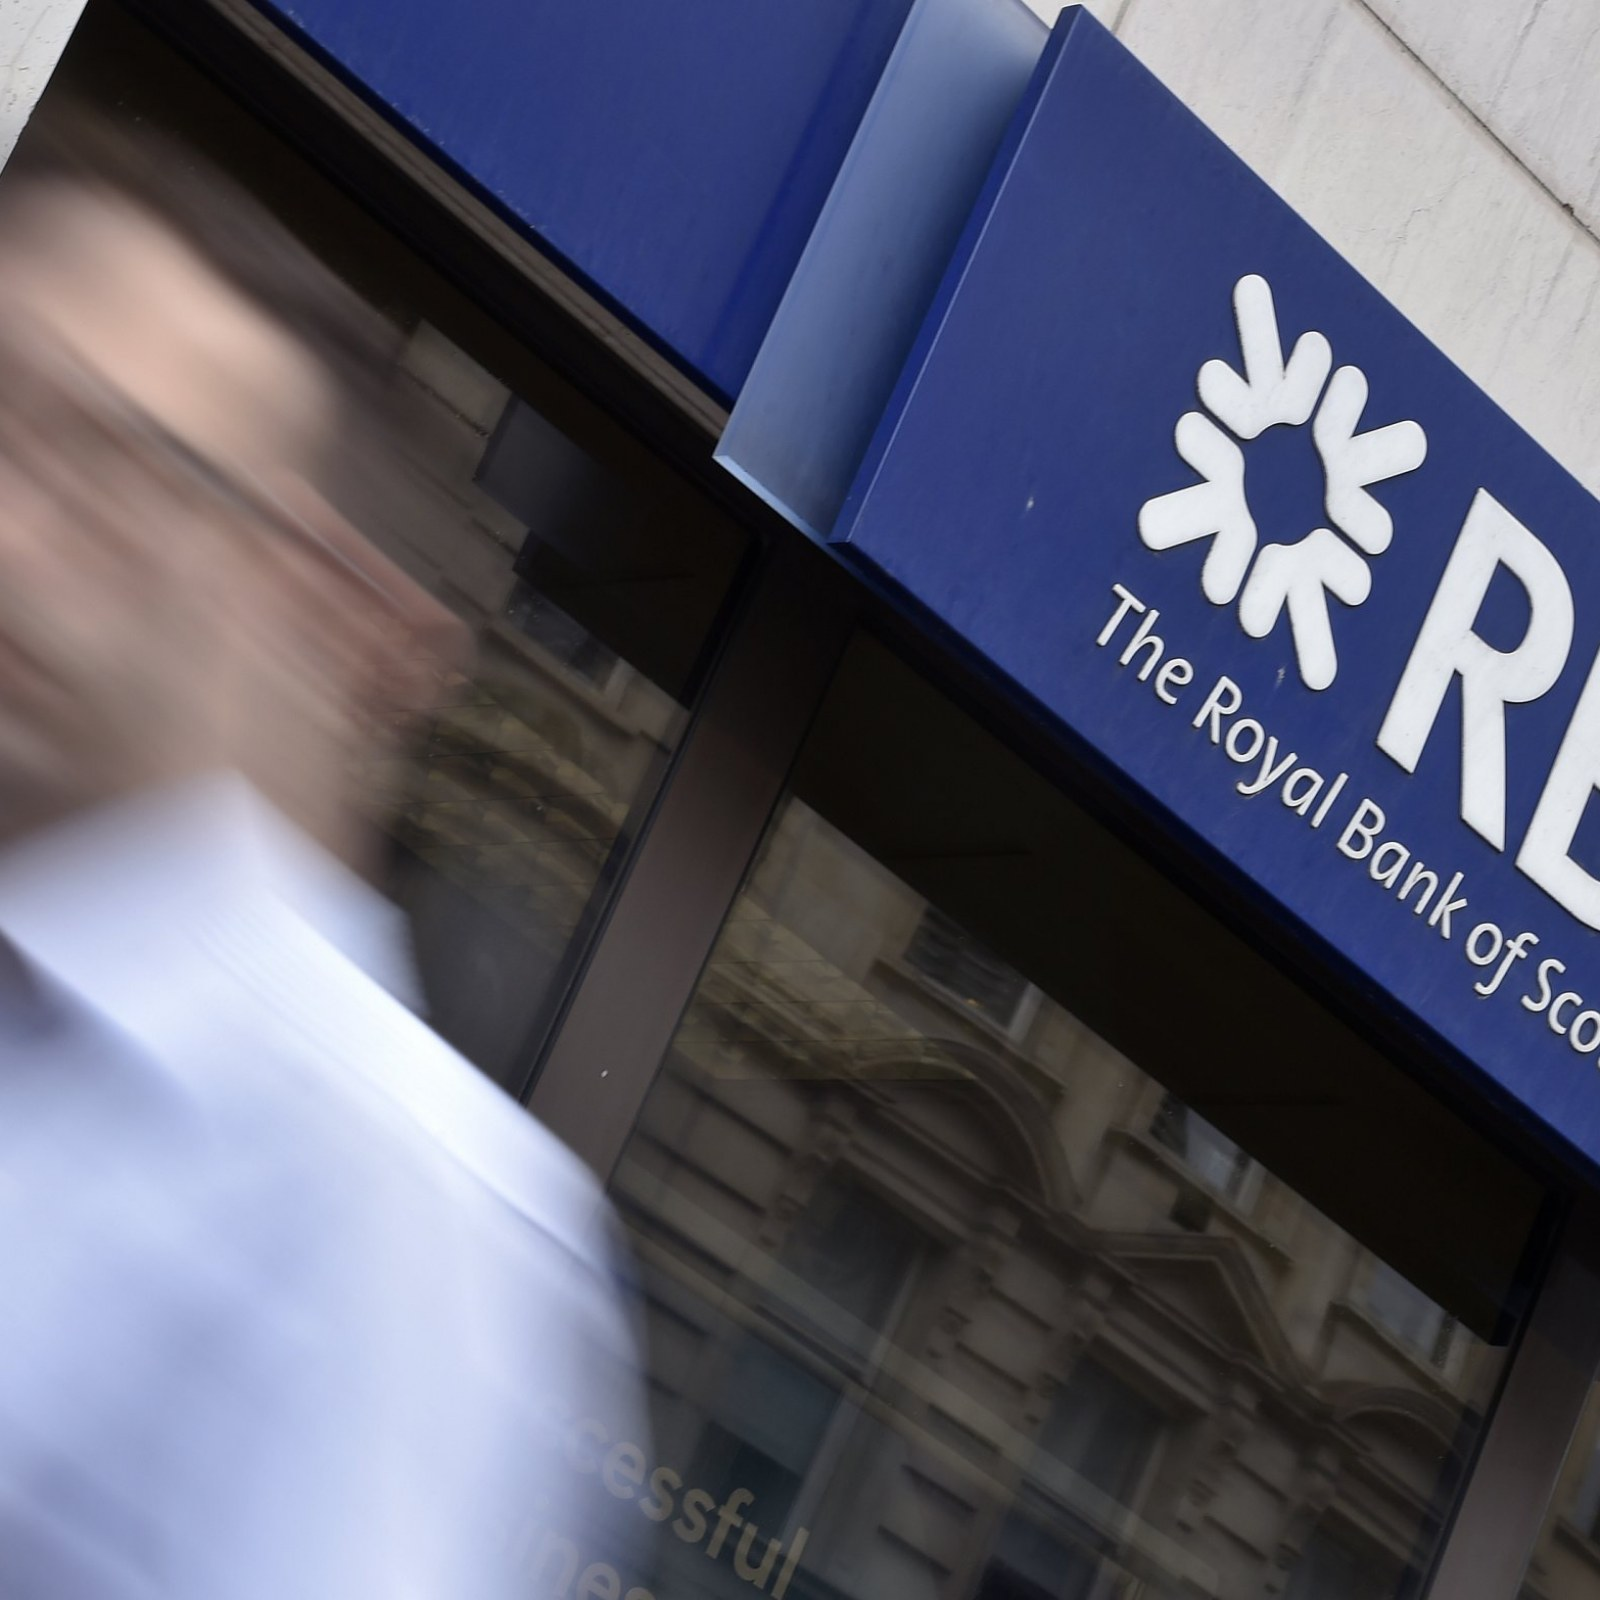 Scotland's Two Biggest Banks to Move South If Scots Vote for